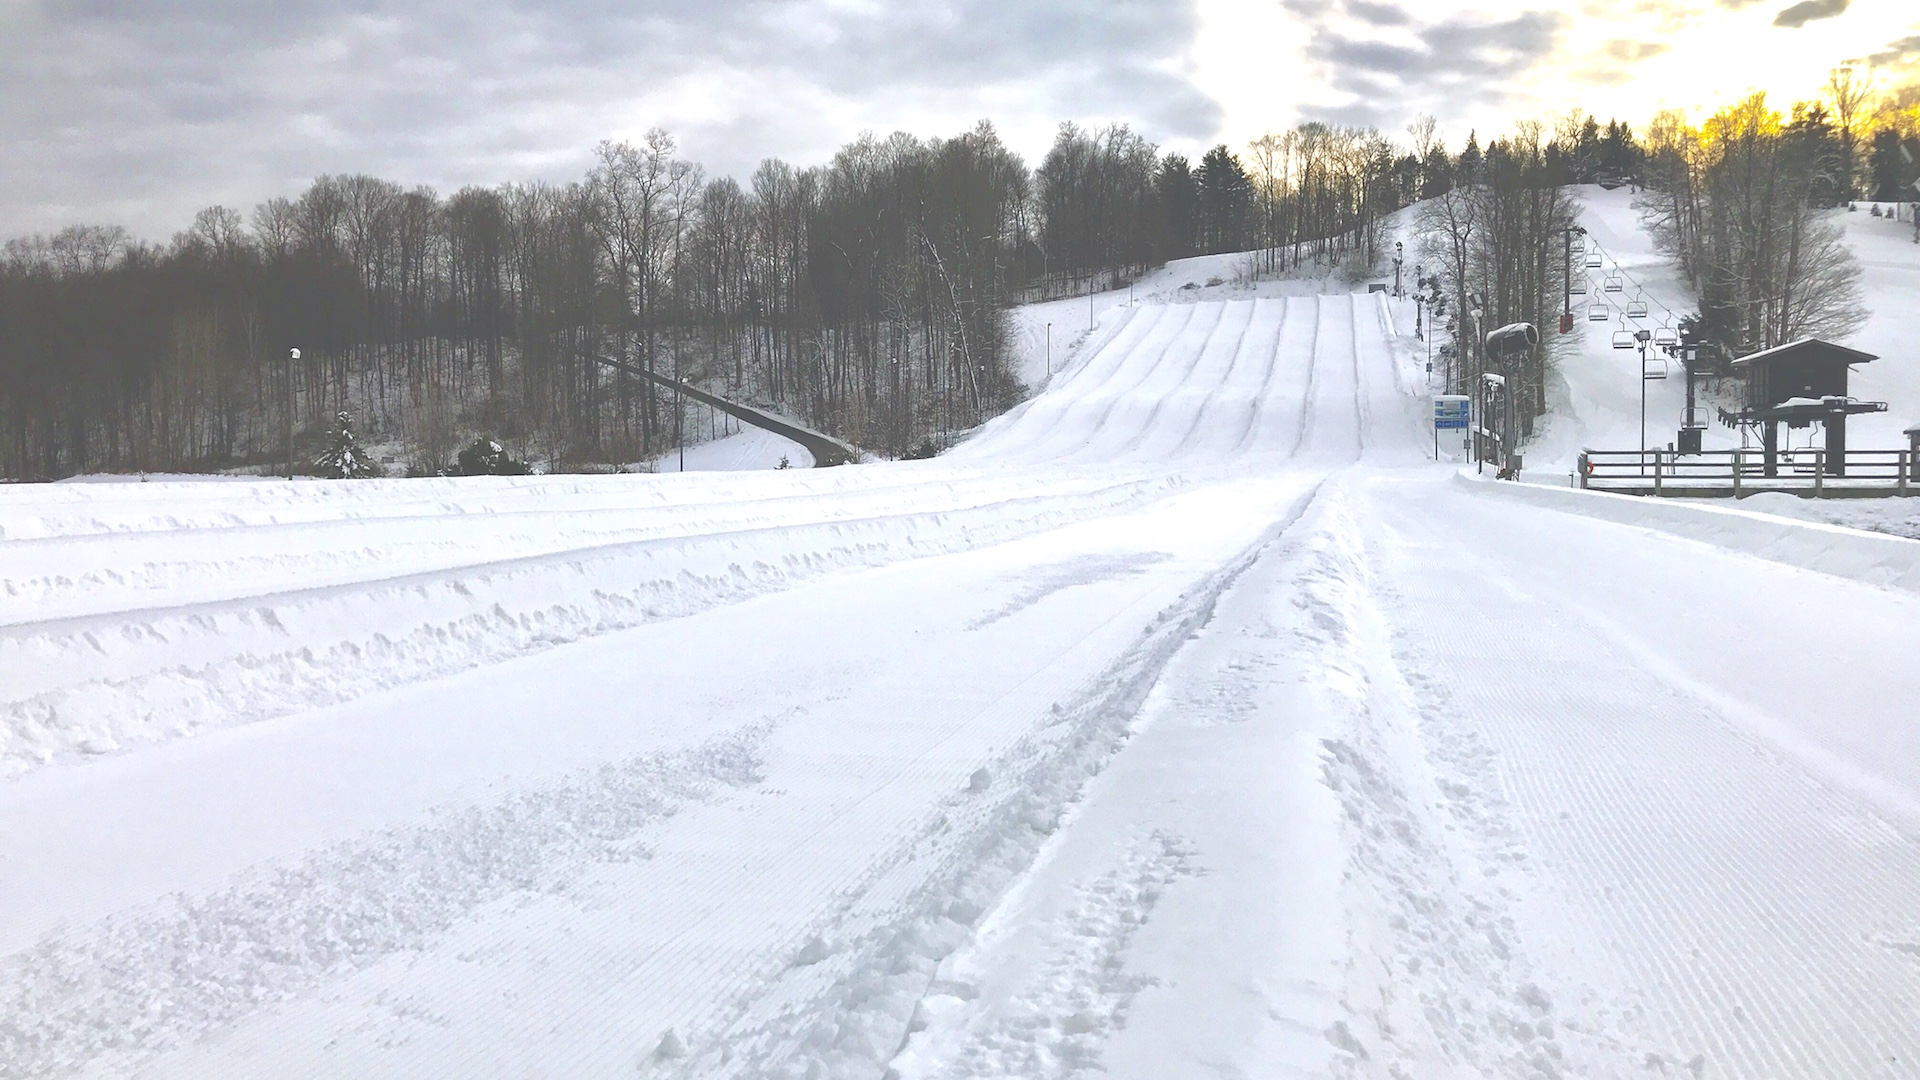 Vertical Descent Tubing Park at Snow Trails in Mansfield, Ohio